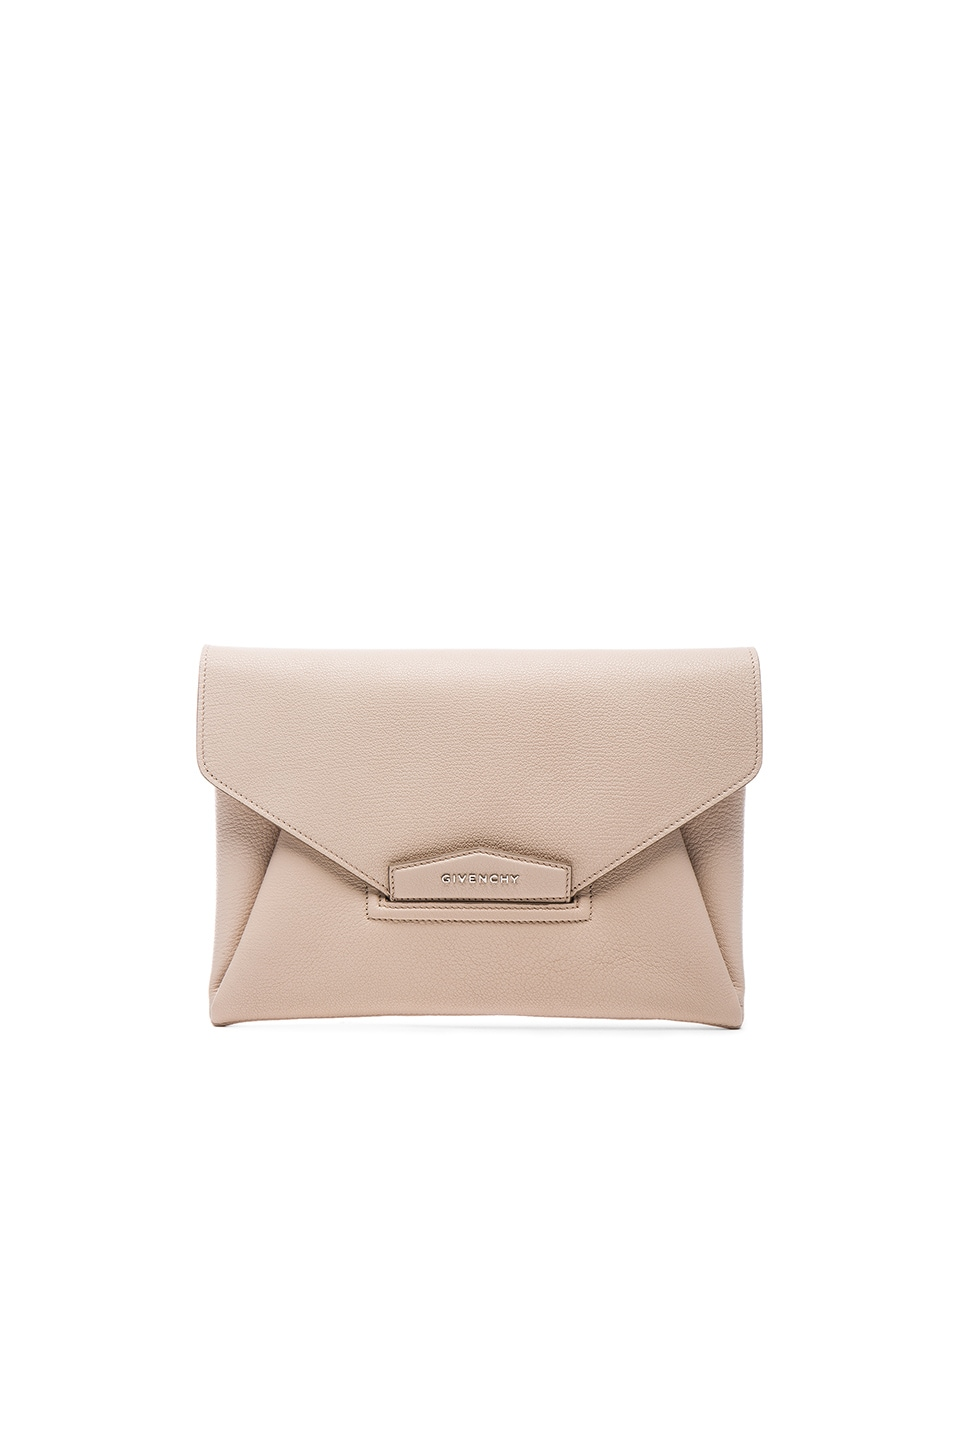 Image 1 of Givenchy Medium Antigona Envelope Clutch in Nude Pink